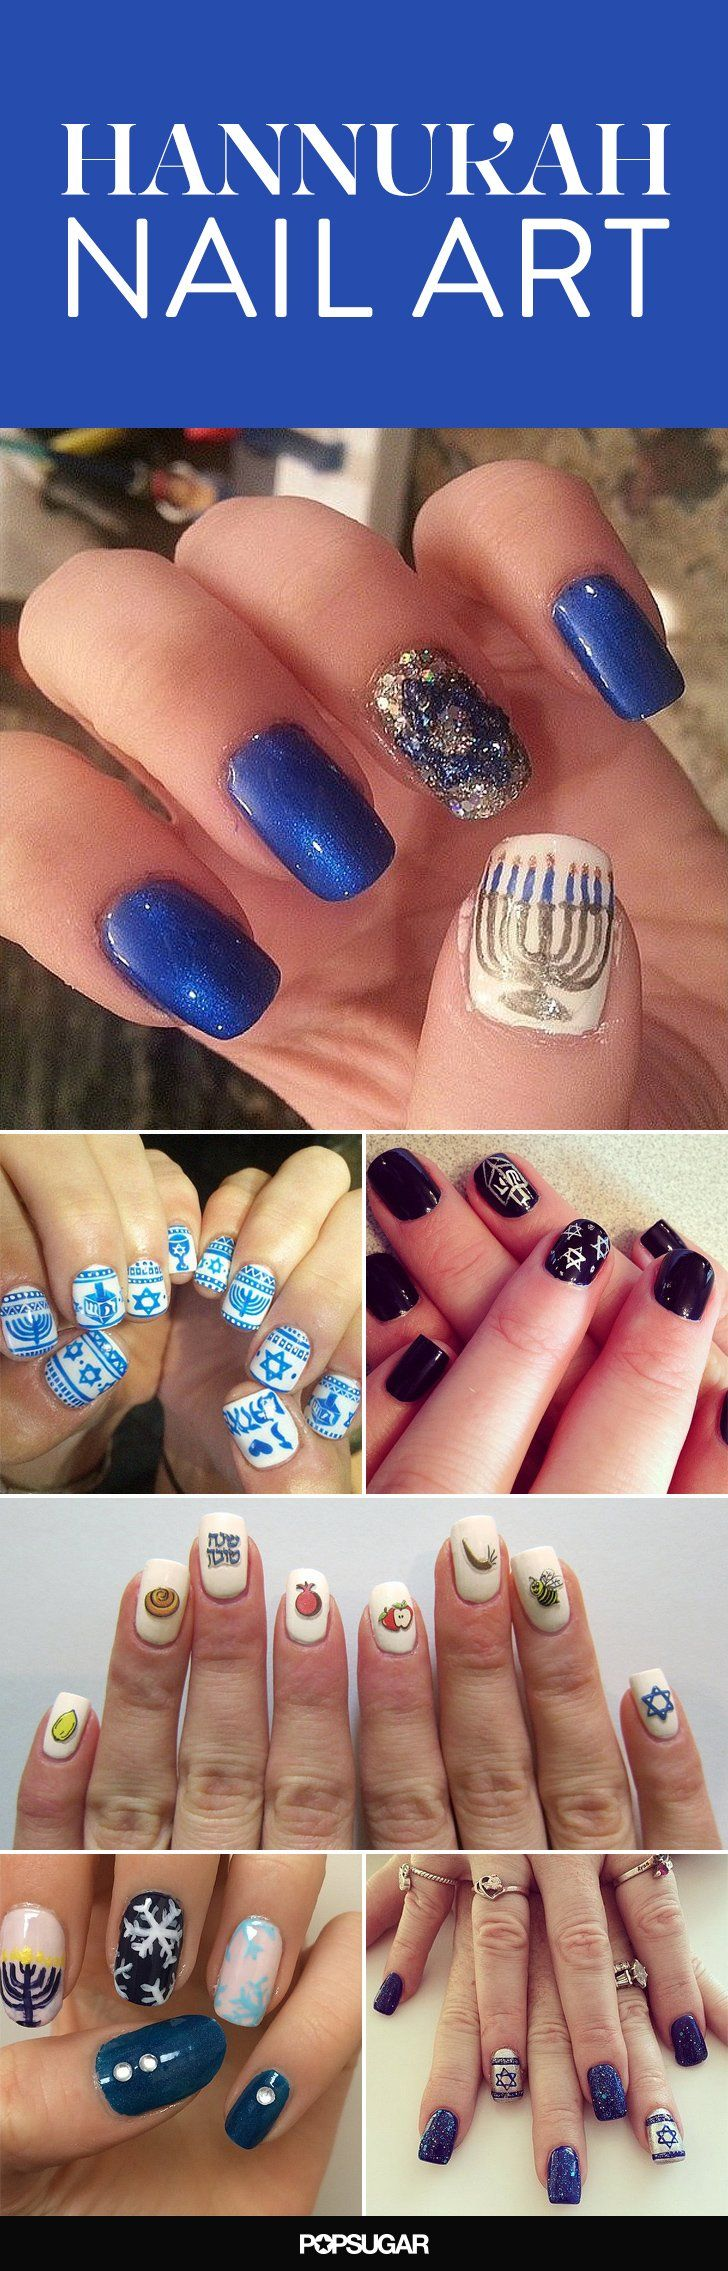 Celebrate Hanukkah With These Jewish Holiday Nail Art Looks